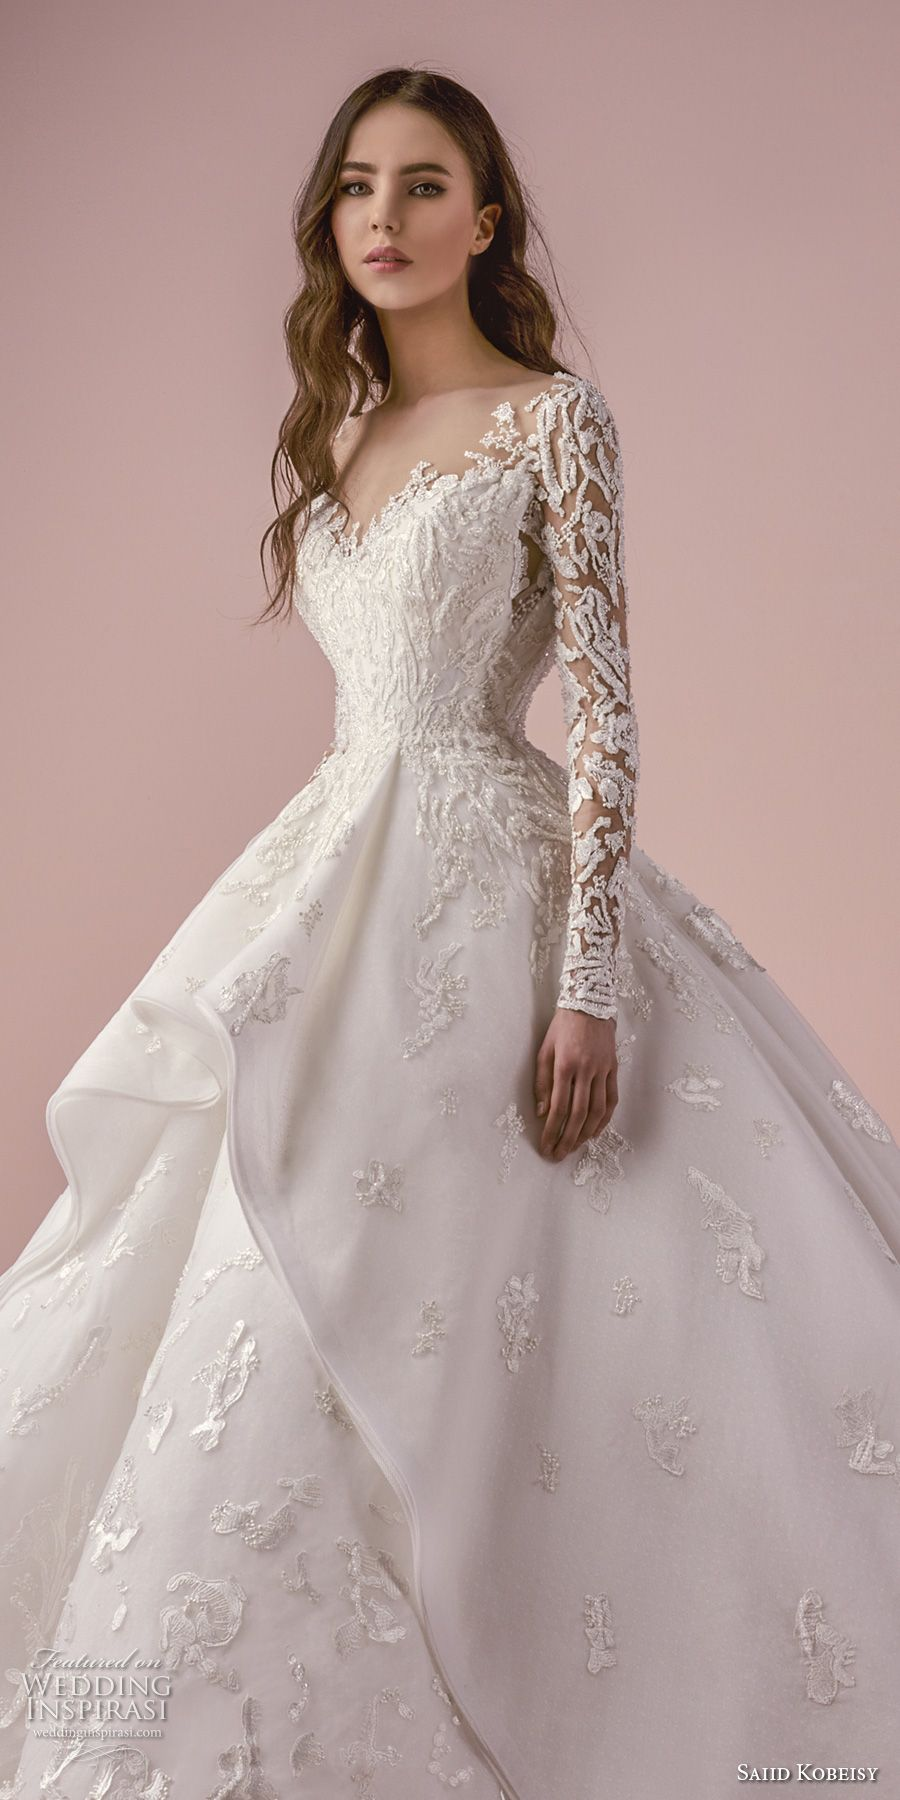 Vintage wedding dresses with sleeves  saiid kobeisy  bridal long sleeves v neck heavily embellished